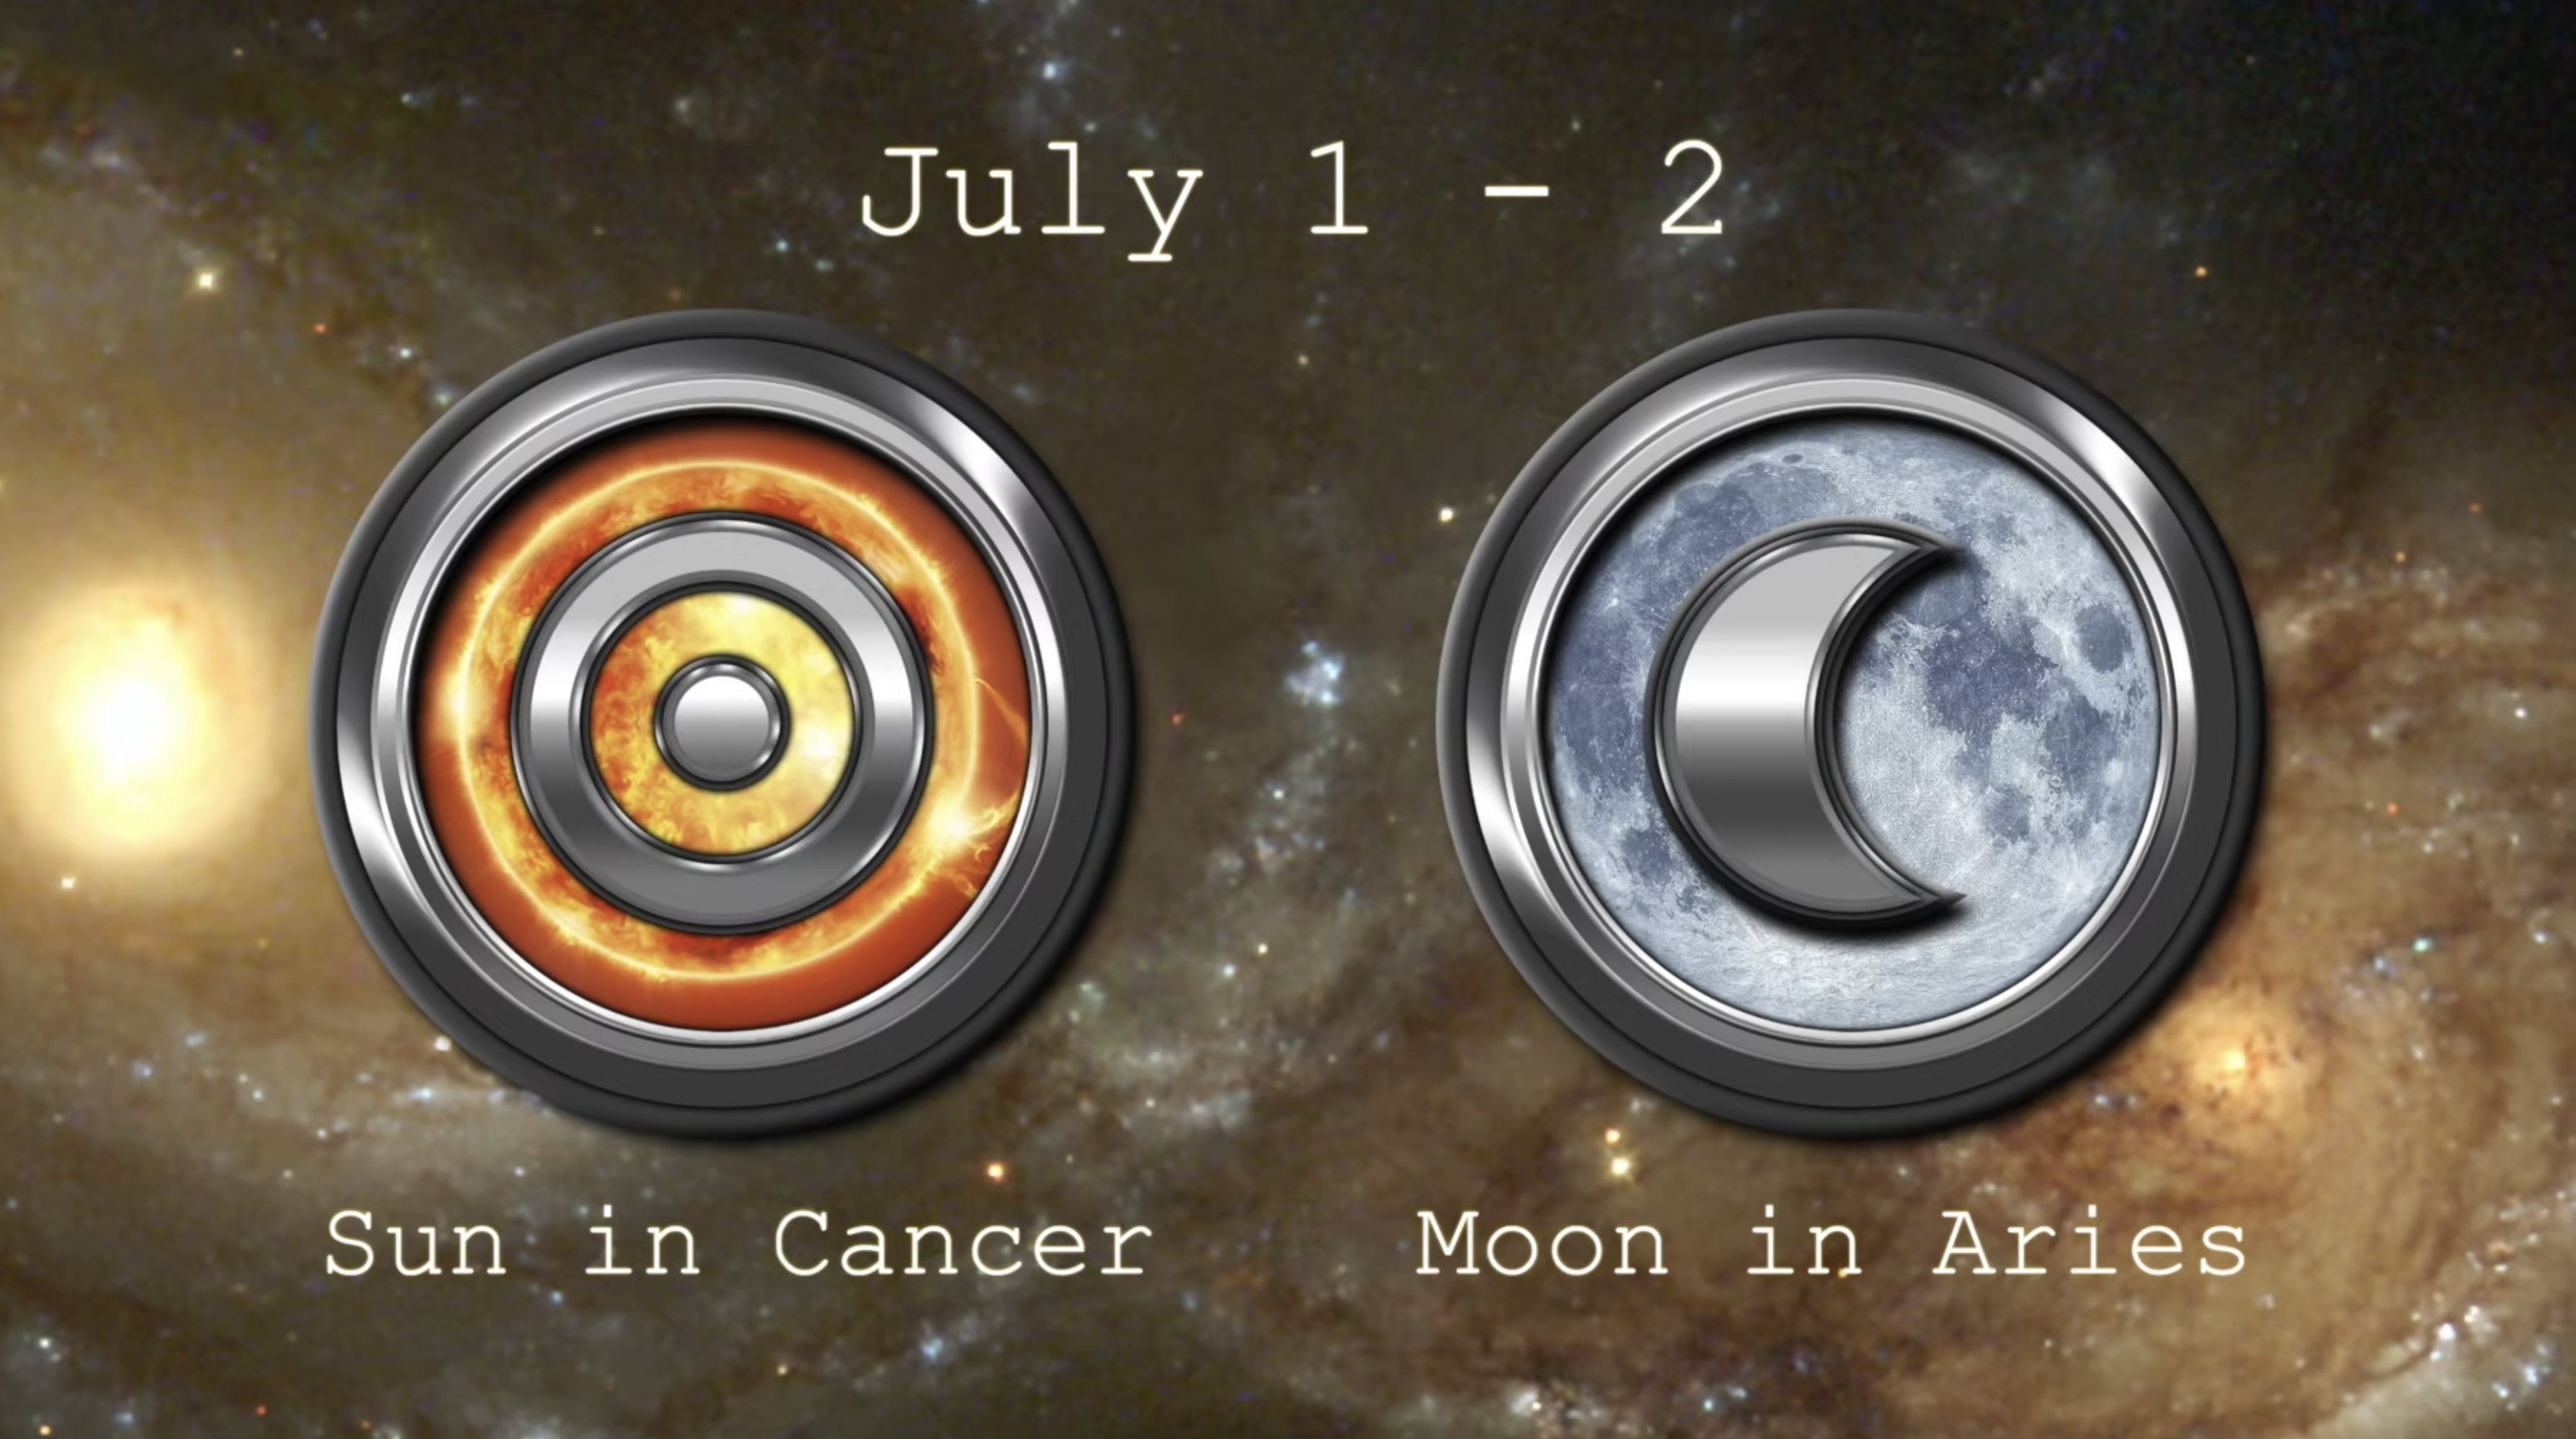 Daily Astrology Forecasts: Sun in Cancer/Moon in Aries